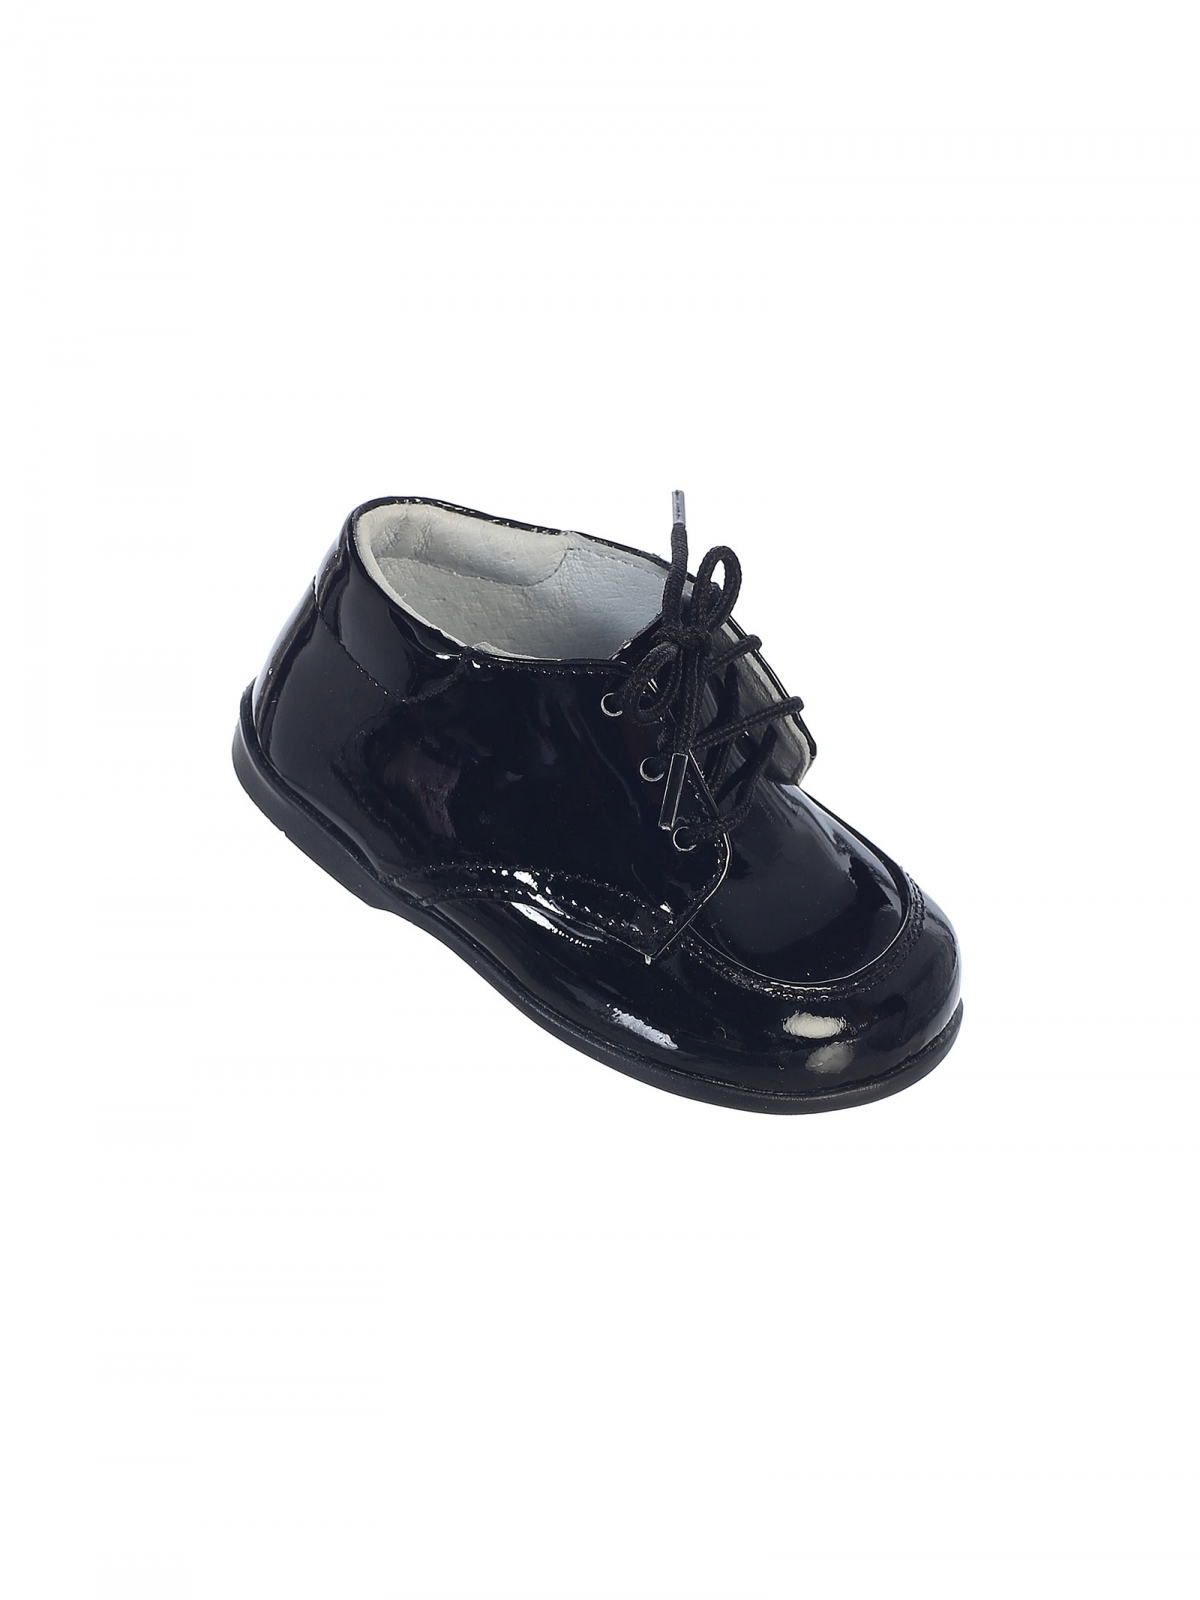 TT S308B Boys Infant and Toddler Shoes Style S308 Black ly